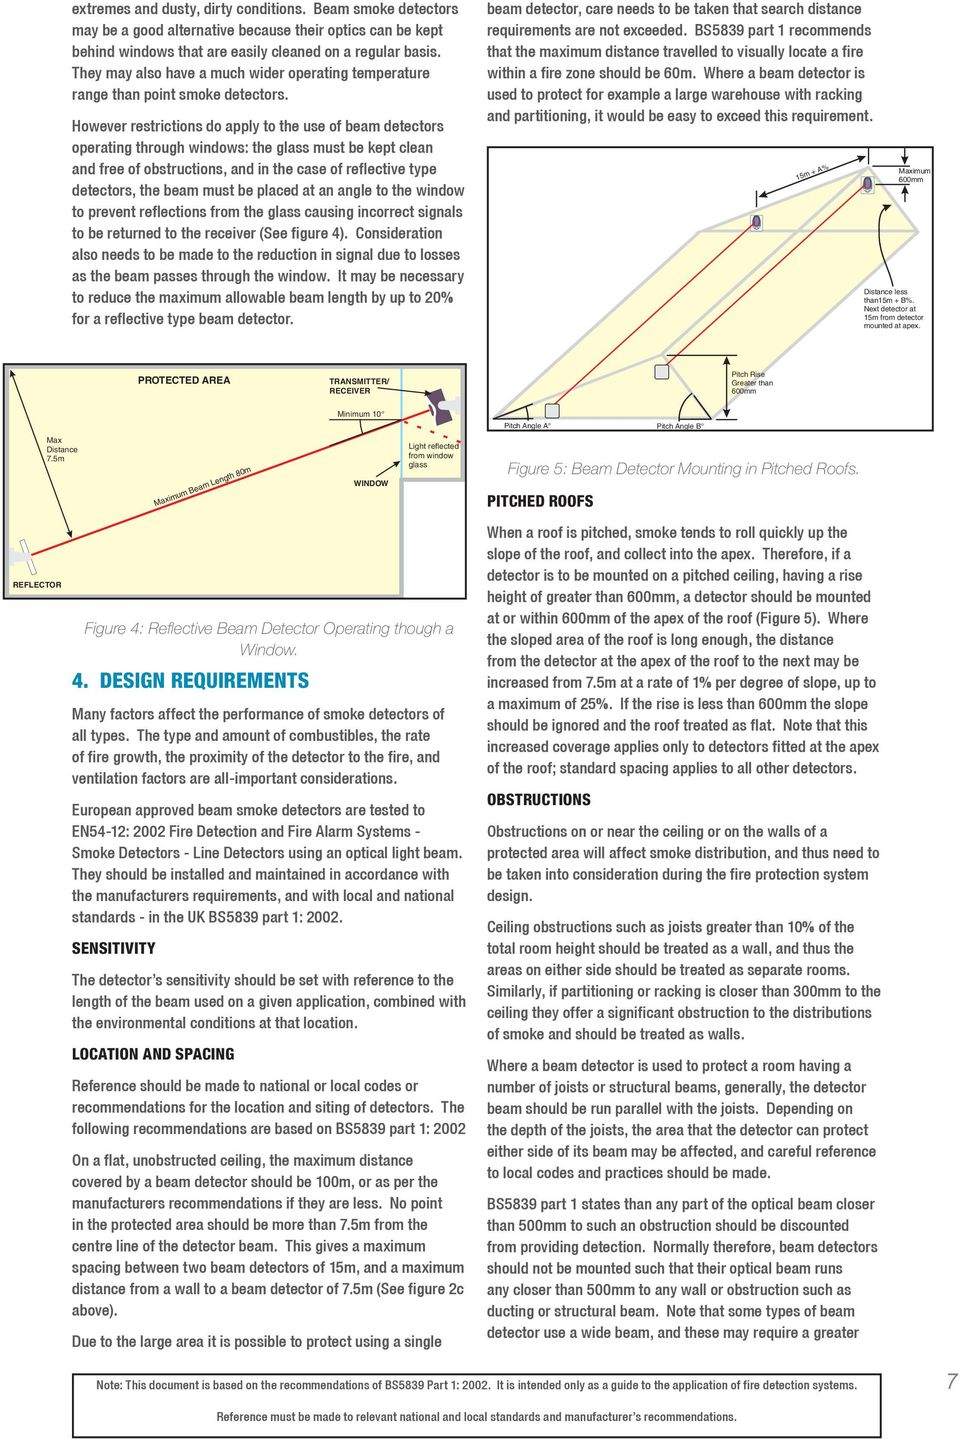 Beam Detection Systems Application Guide - PDF